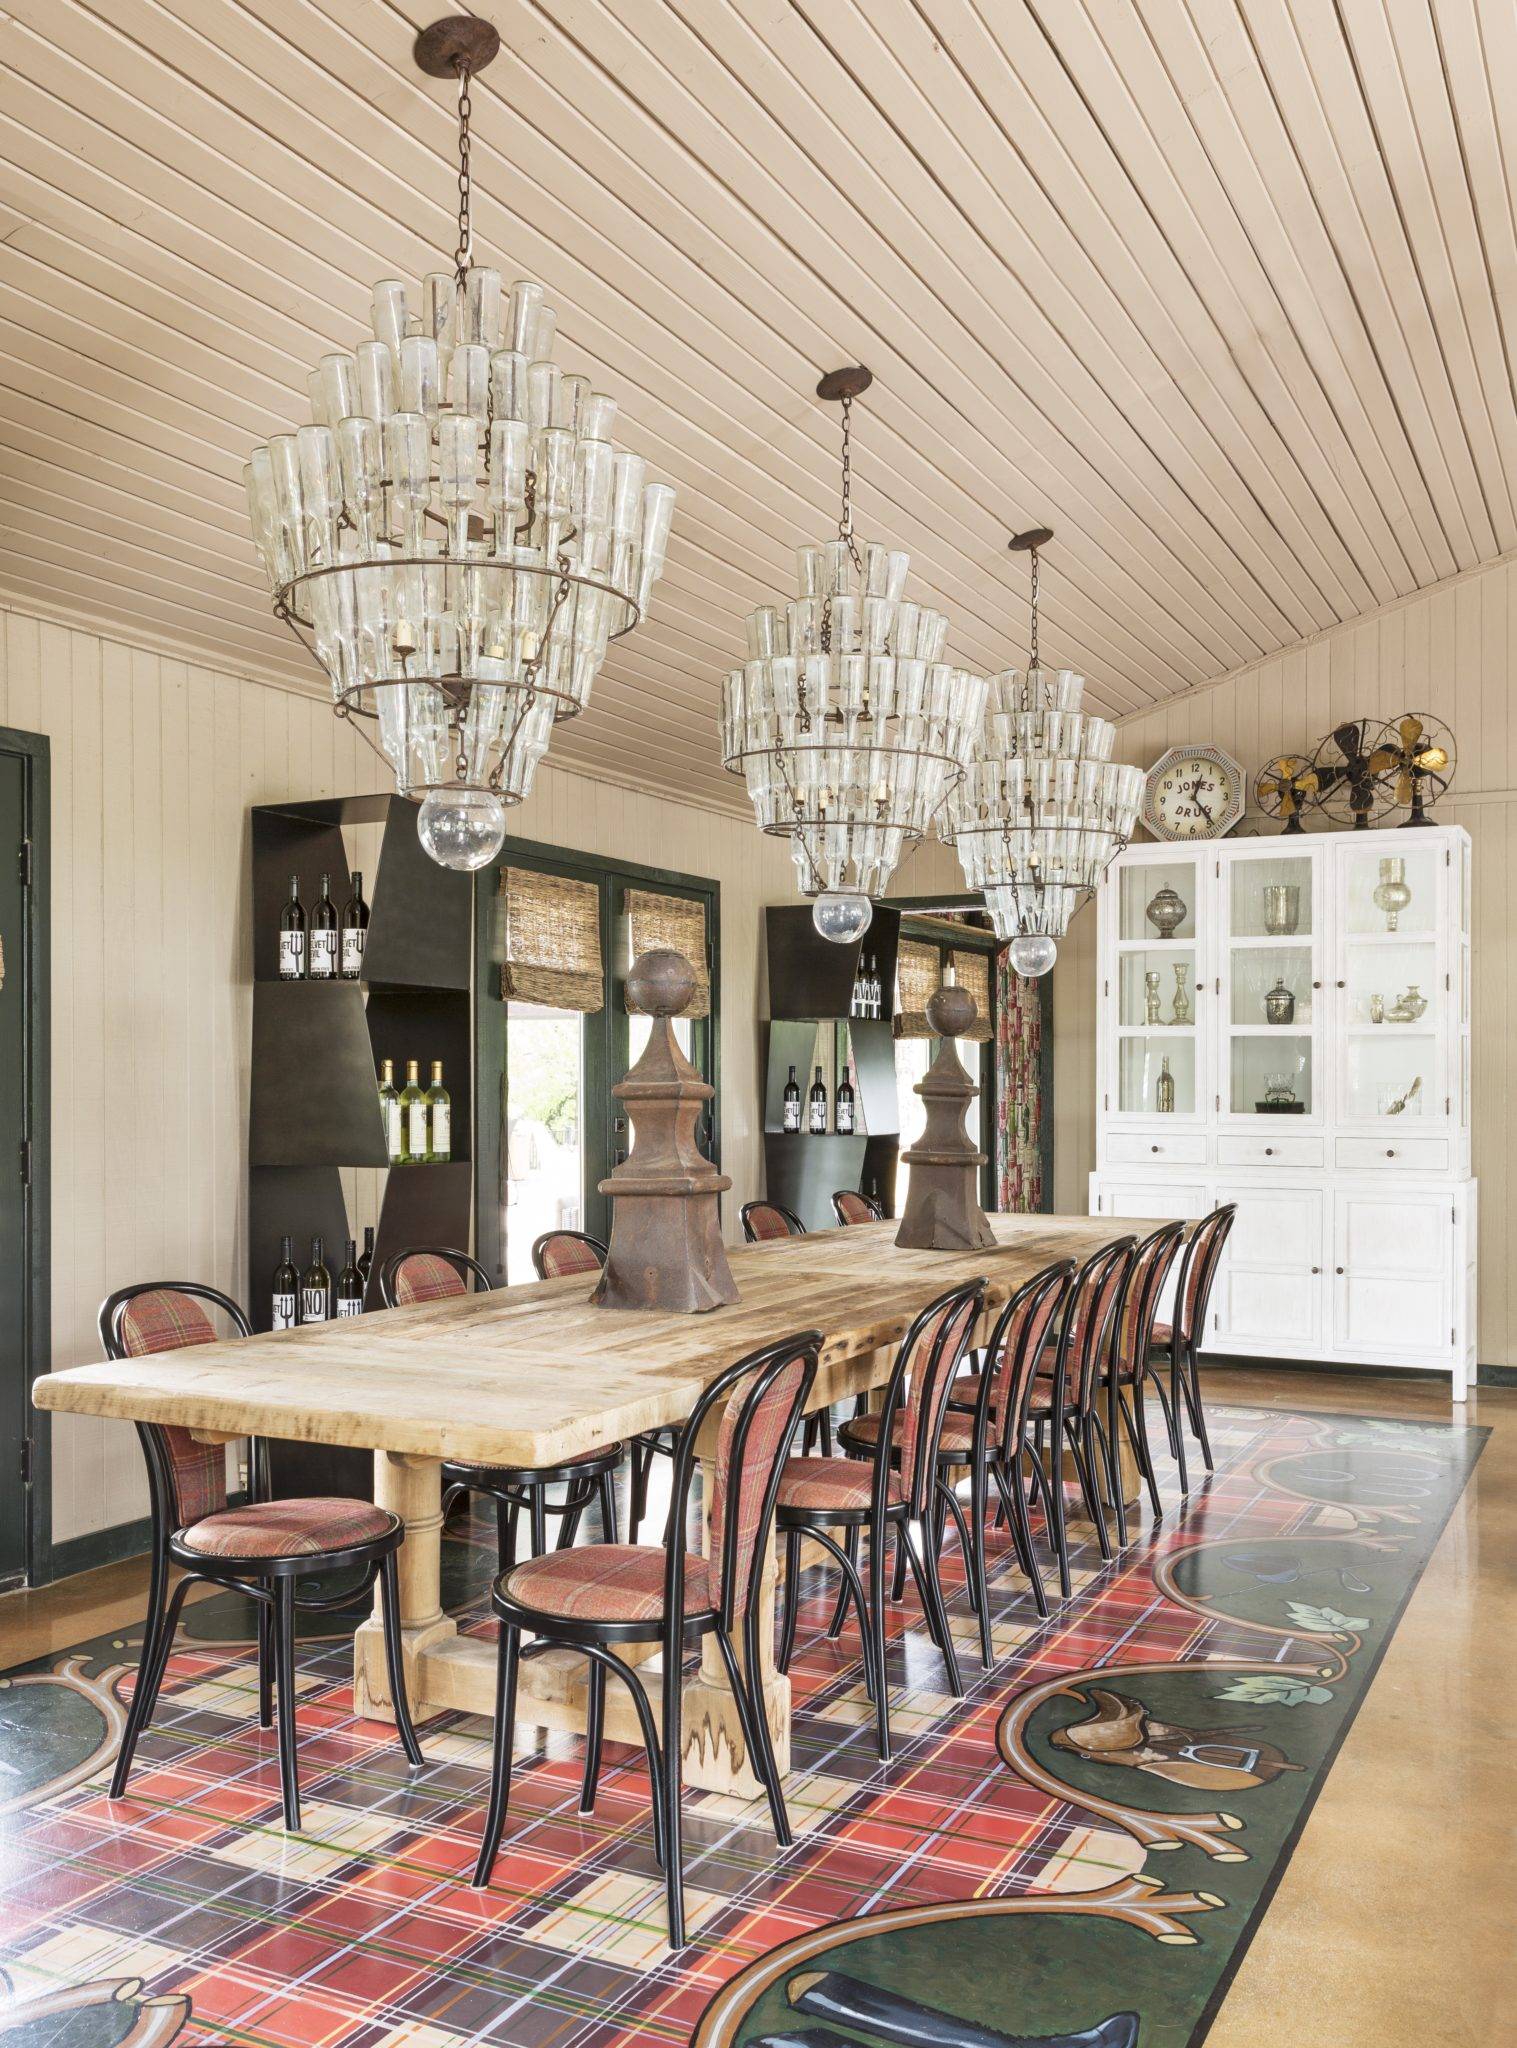 Dining room with hand-painted equestrian theme floor by Goddard Design Group